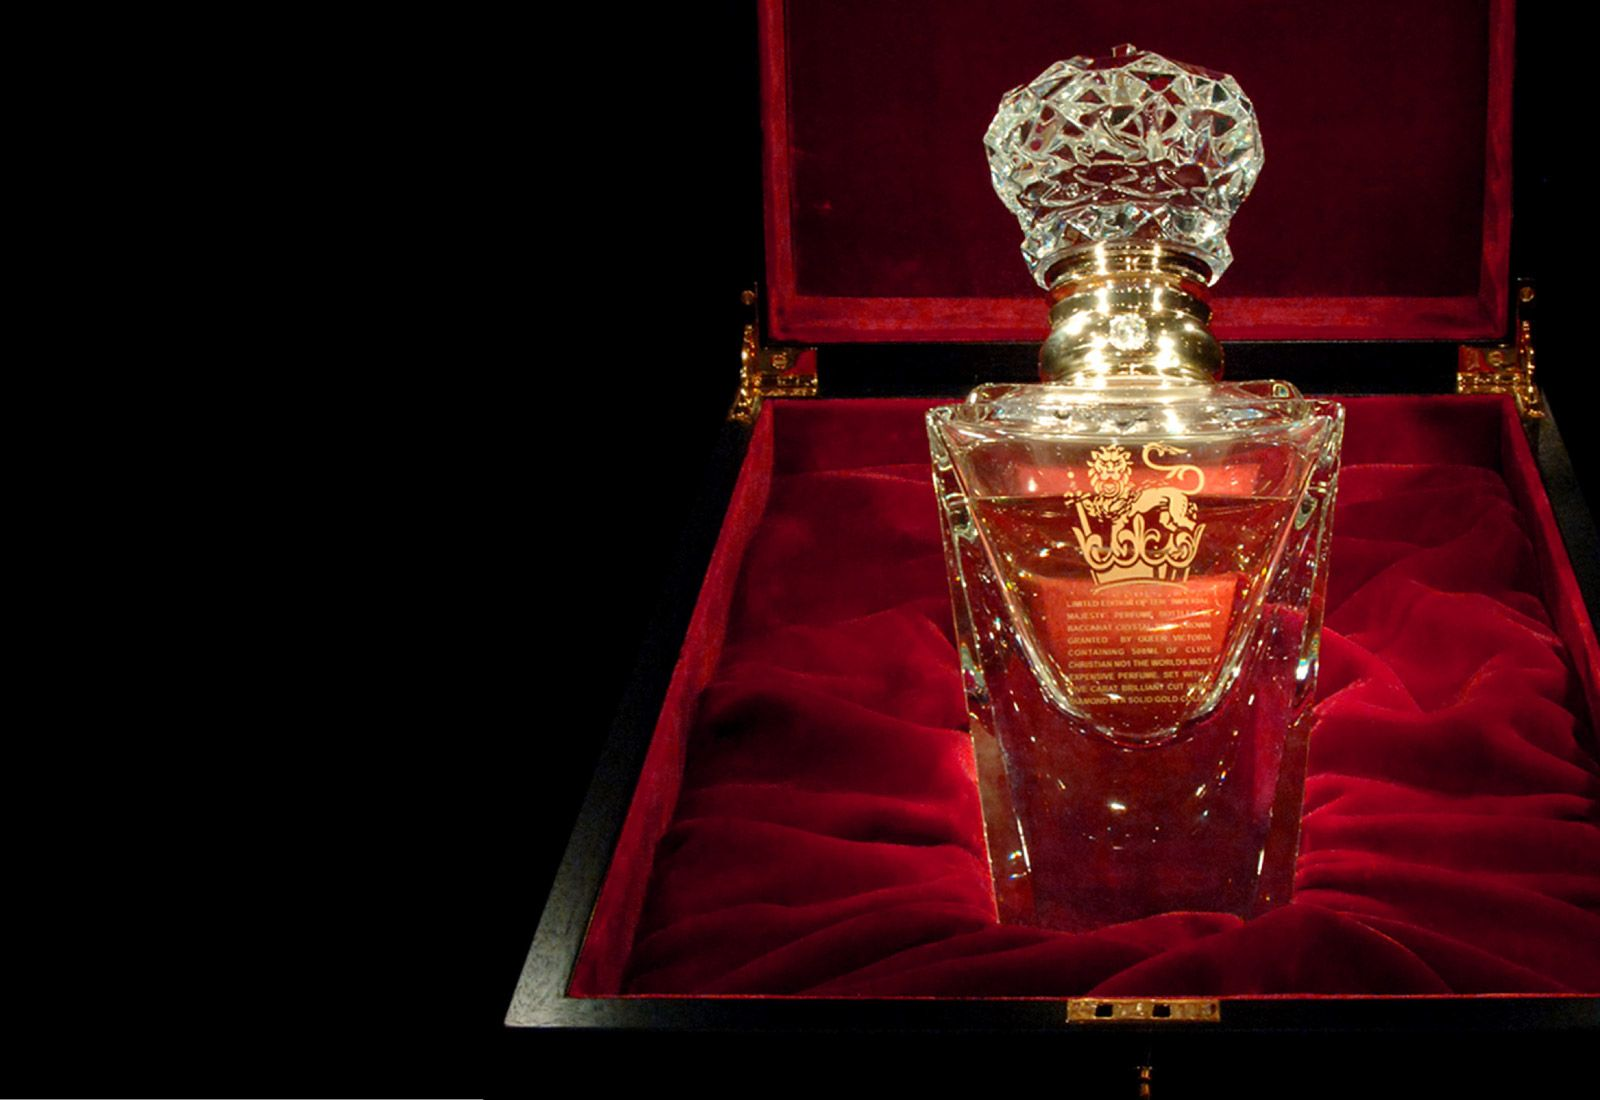 CLIVE CHRISTIAN NO. 1 IMPERIAL MAJESTY PERFUME -